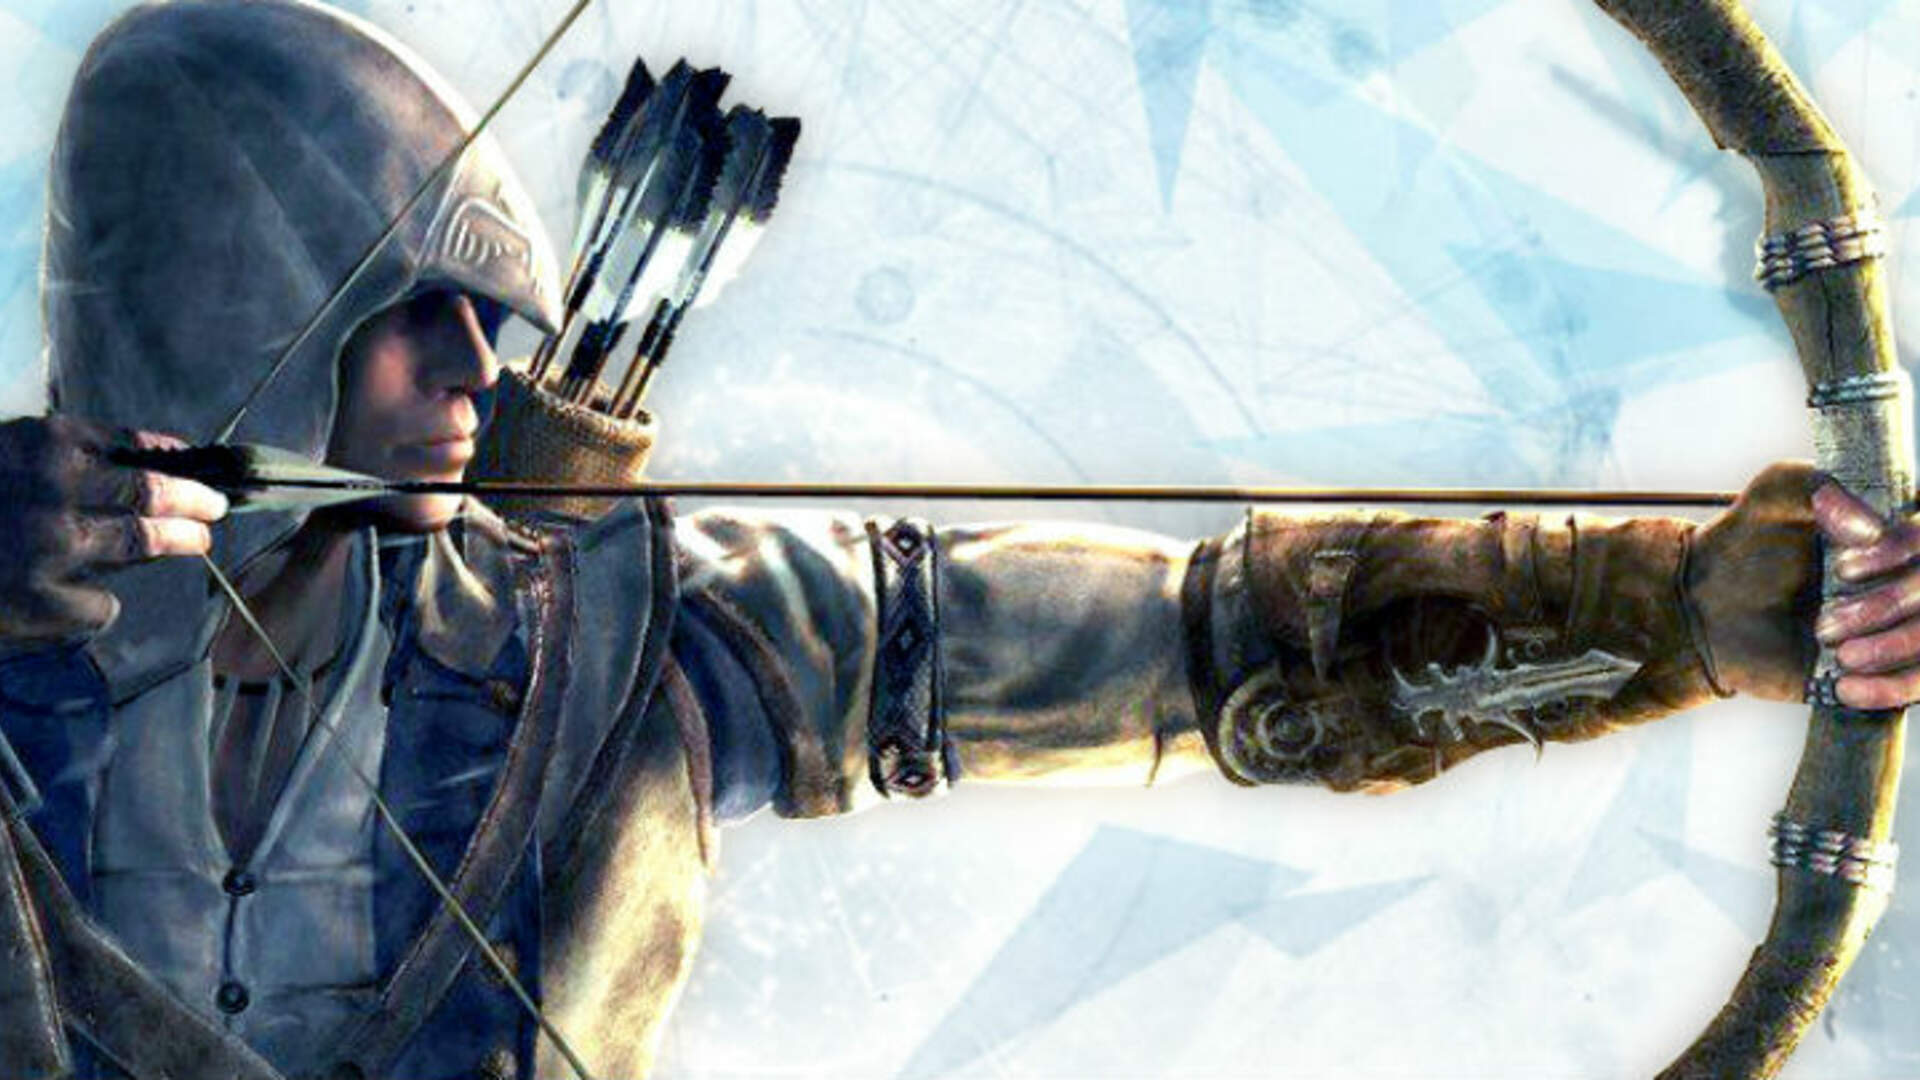 Is Assassin's Creed 3 That Bad? Flashback Review